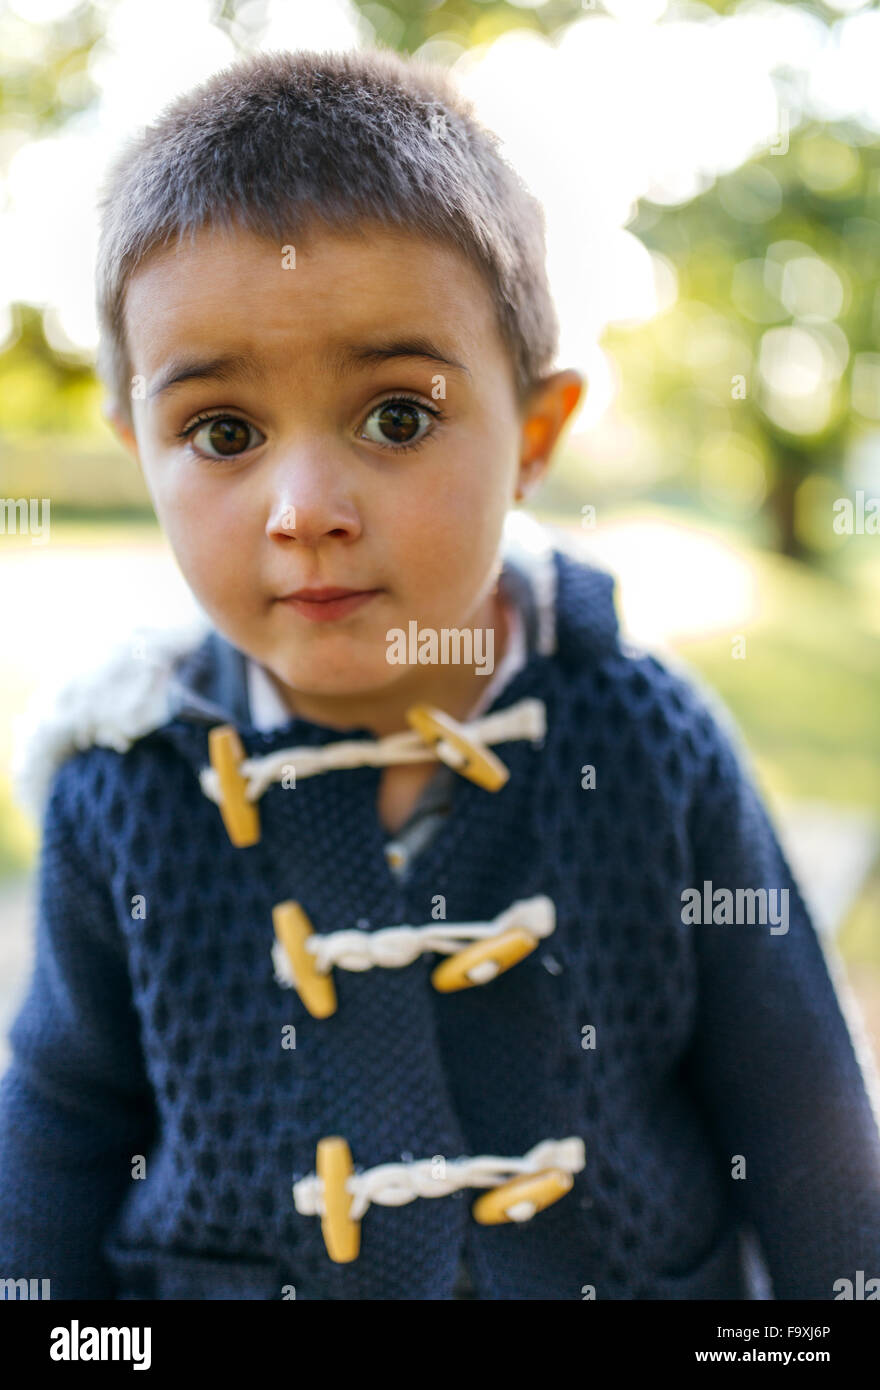 Portrait of little boy with eyes wide open Stock Photo